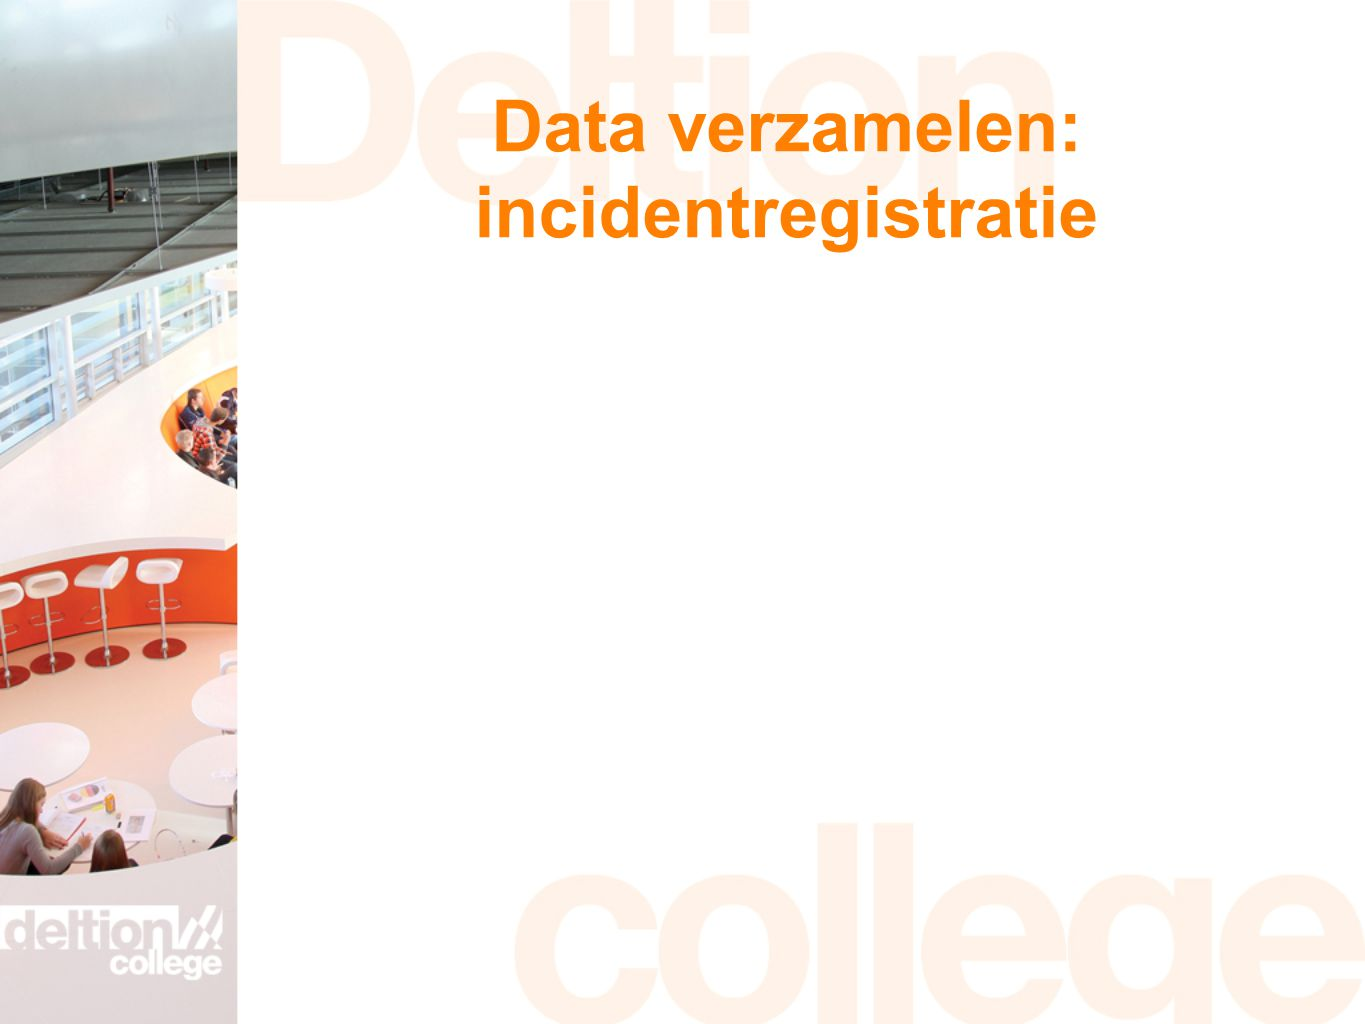 Data verzamelen: incidentregistratie